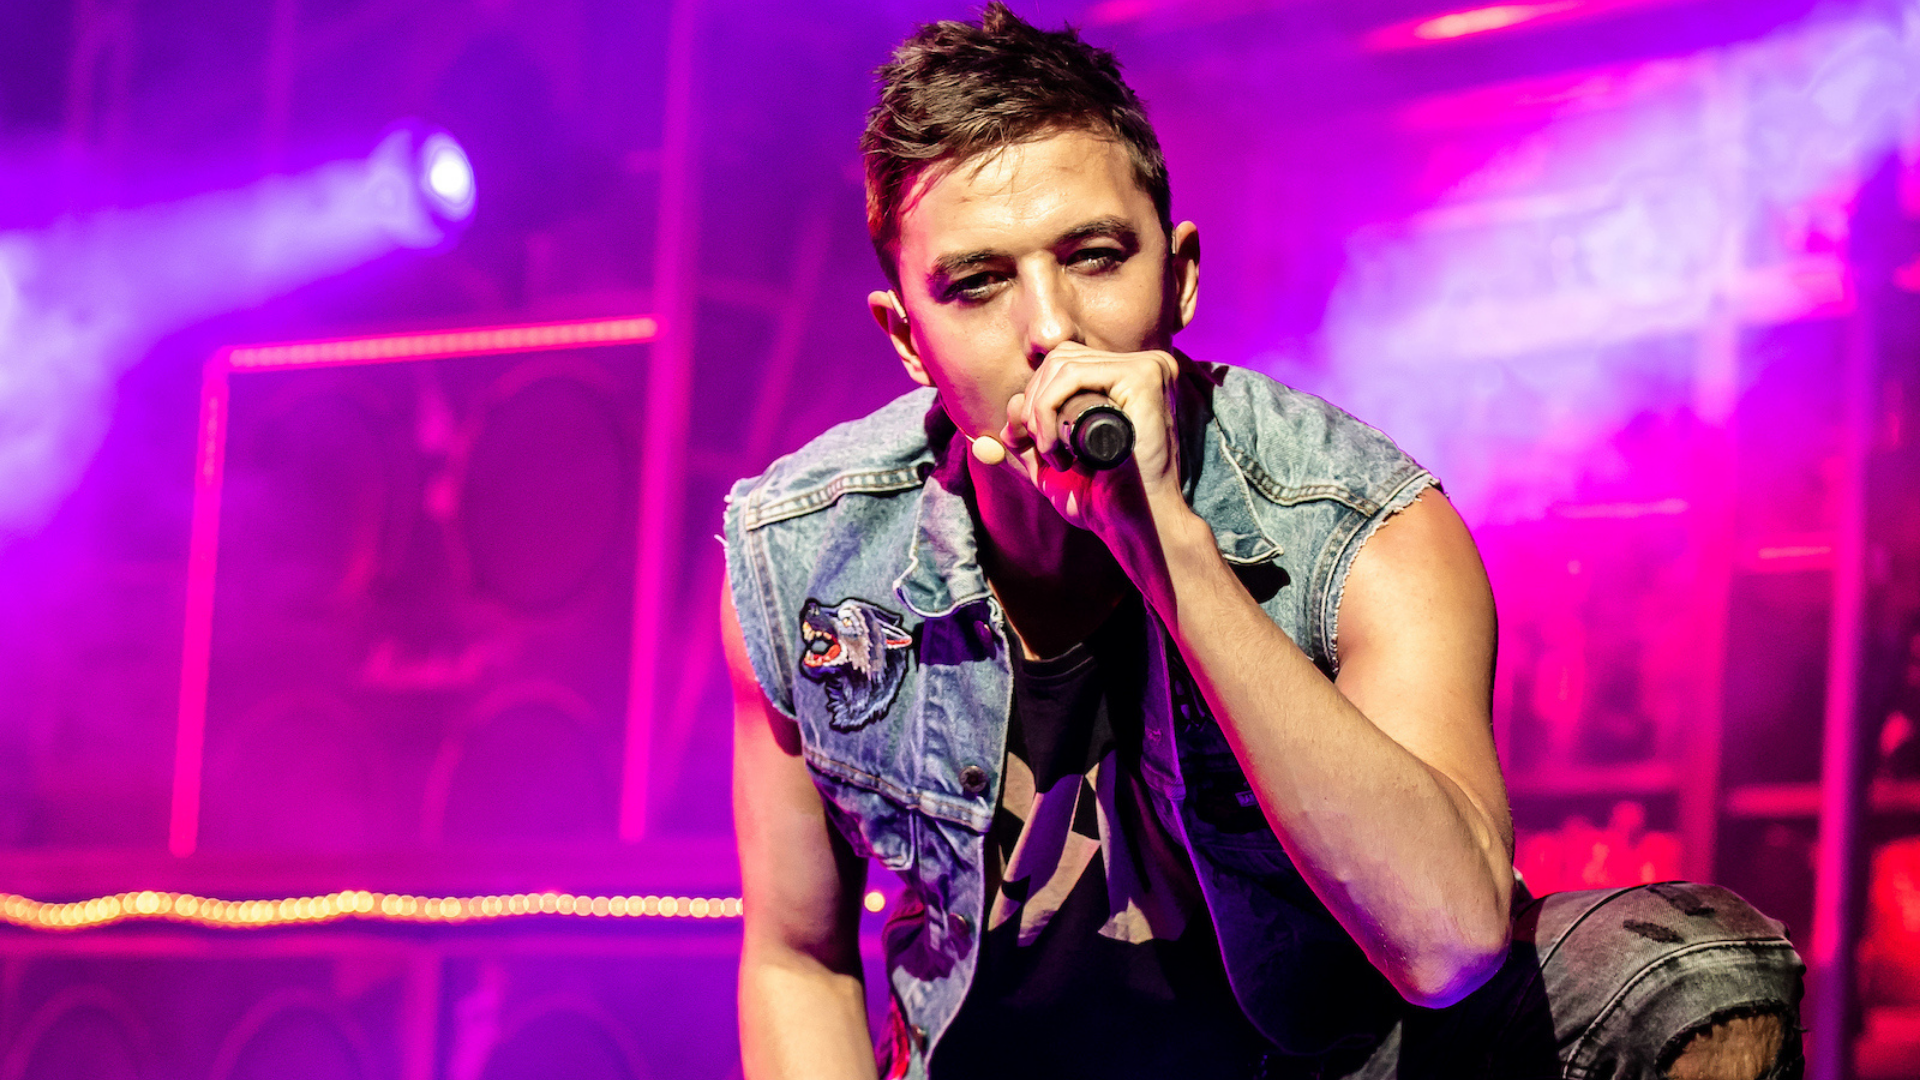 Rock of Ages production shot: the lead male actor looks directly into the camera as he holds a microphone and sings